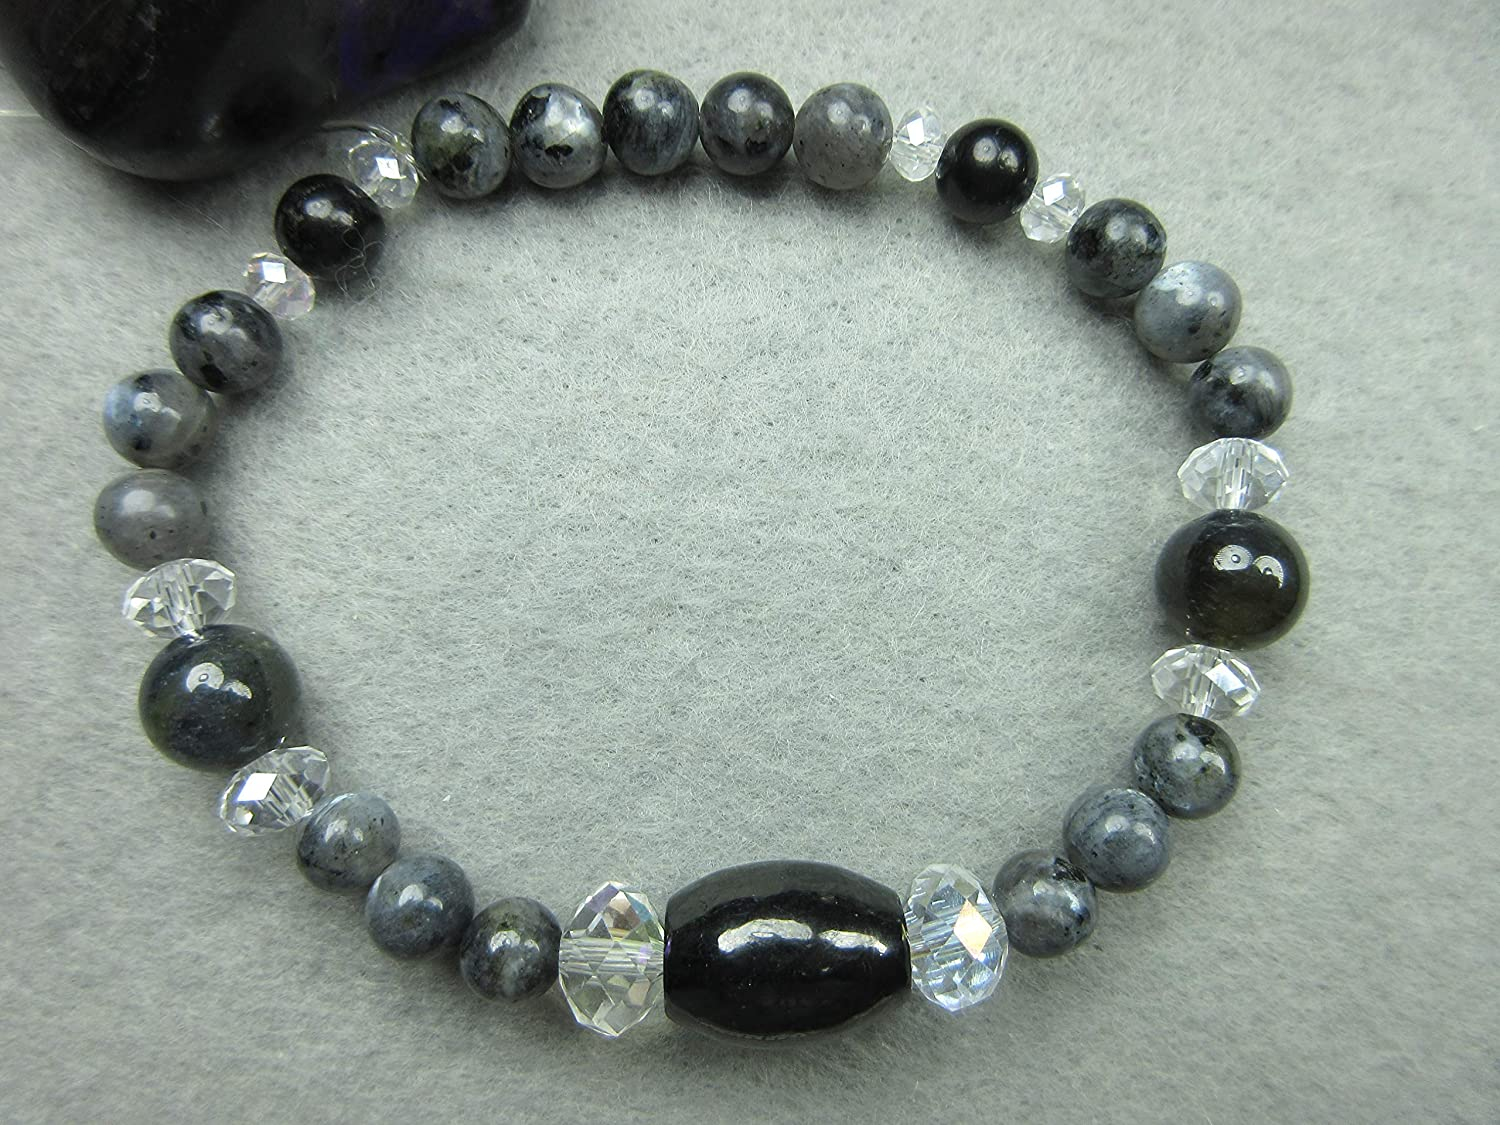 Genuine Shungite, Iolite and Larvikite Healing Bracelet Protection Intuition